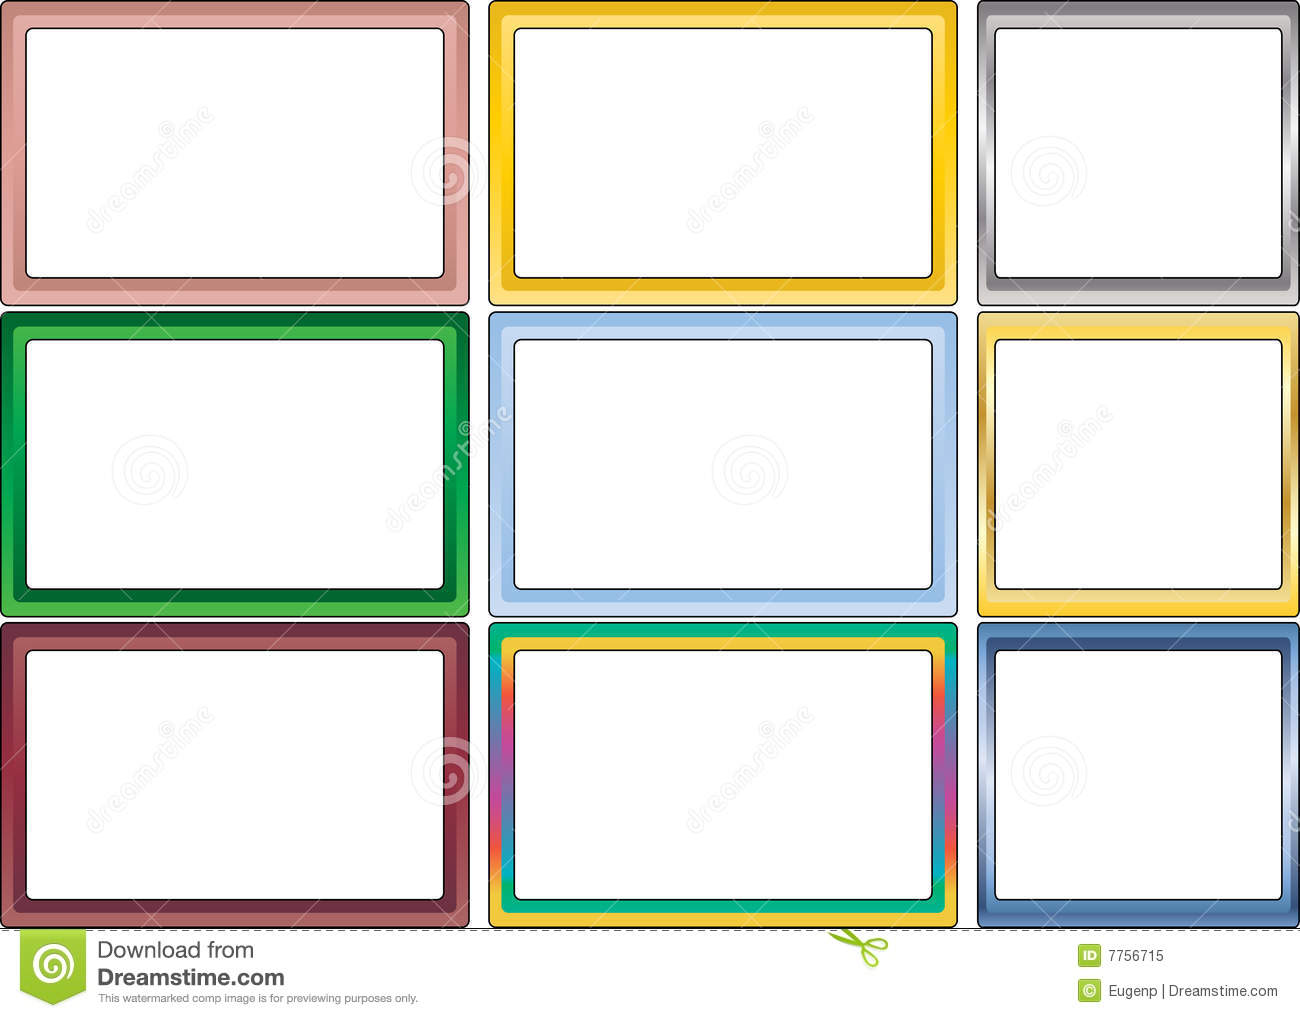 Set Of Simple Color Photo Frames Stock Vector - Illustration of ...